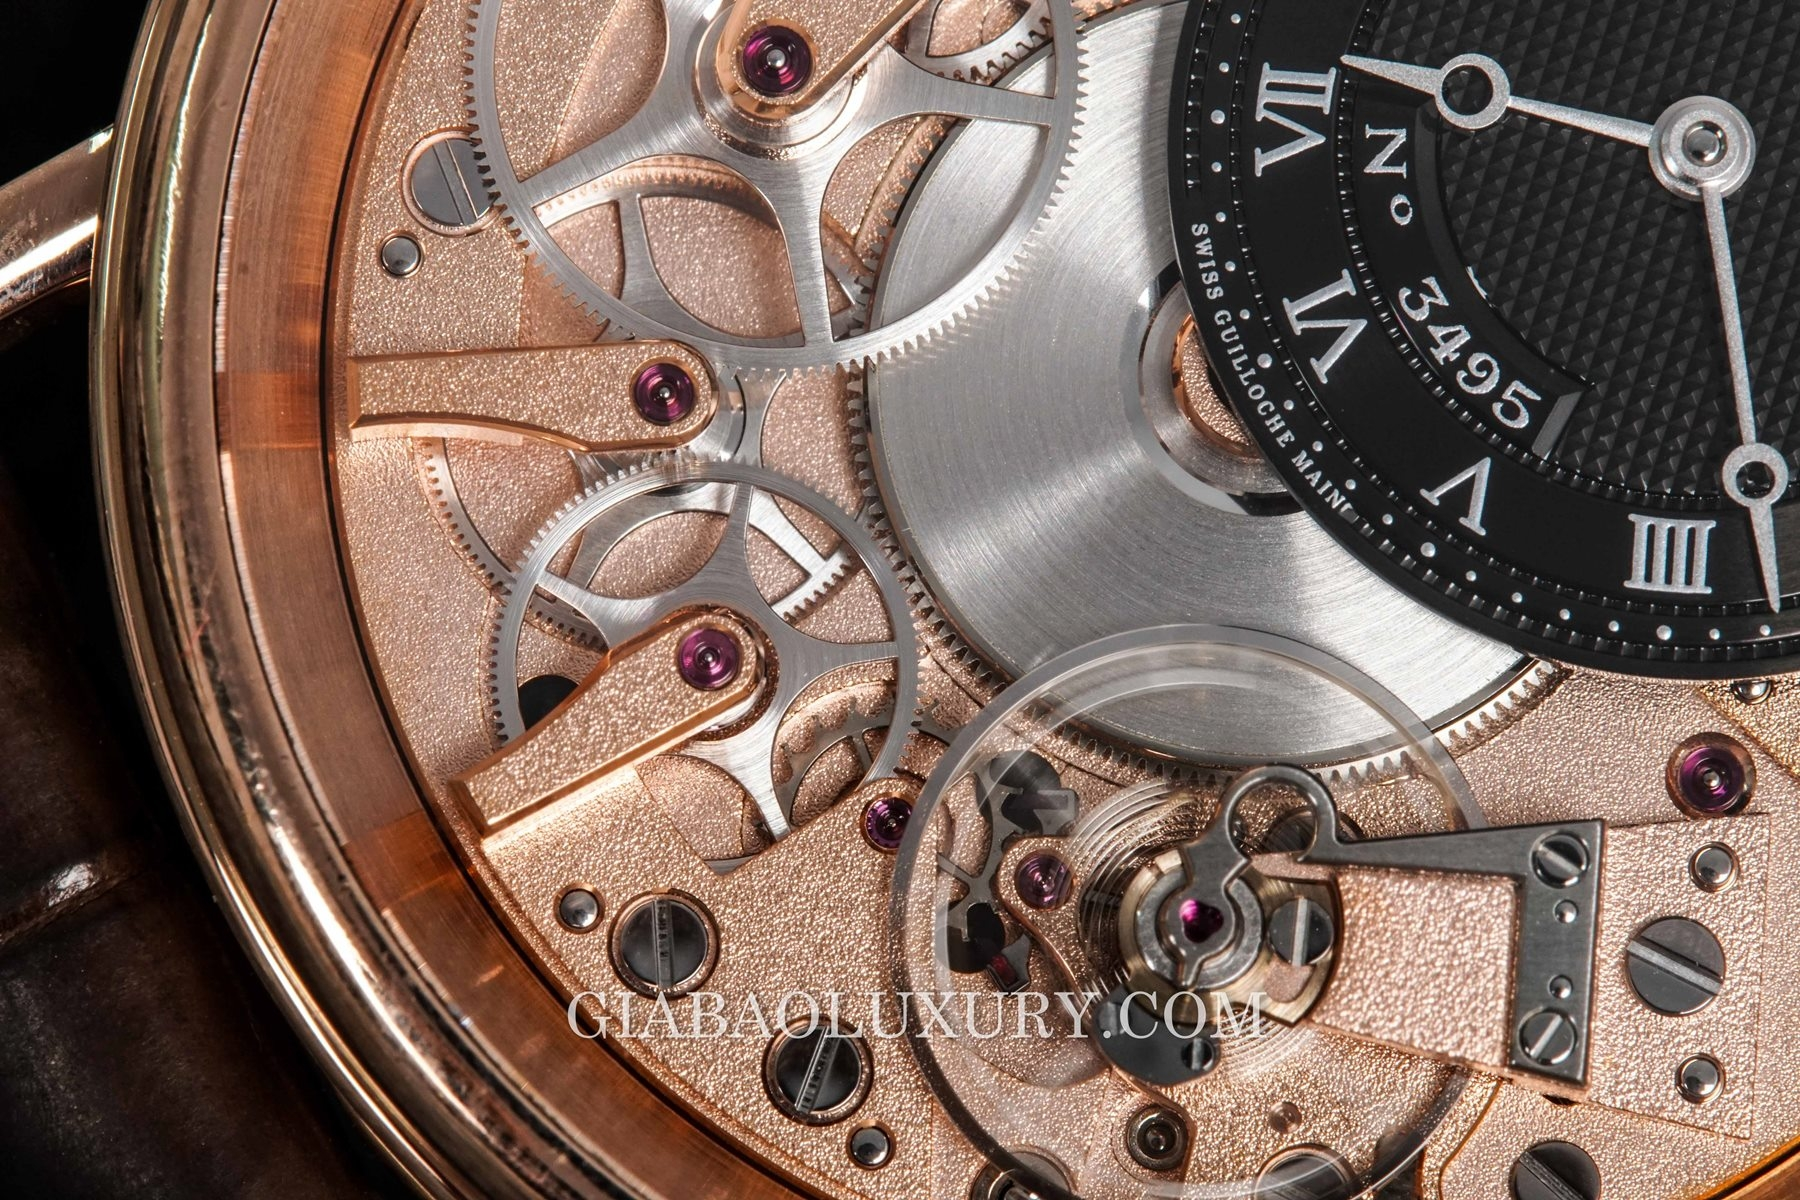 Breguet La Tradition Ref.7057